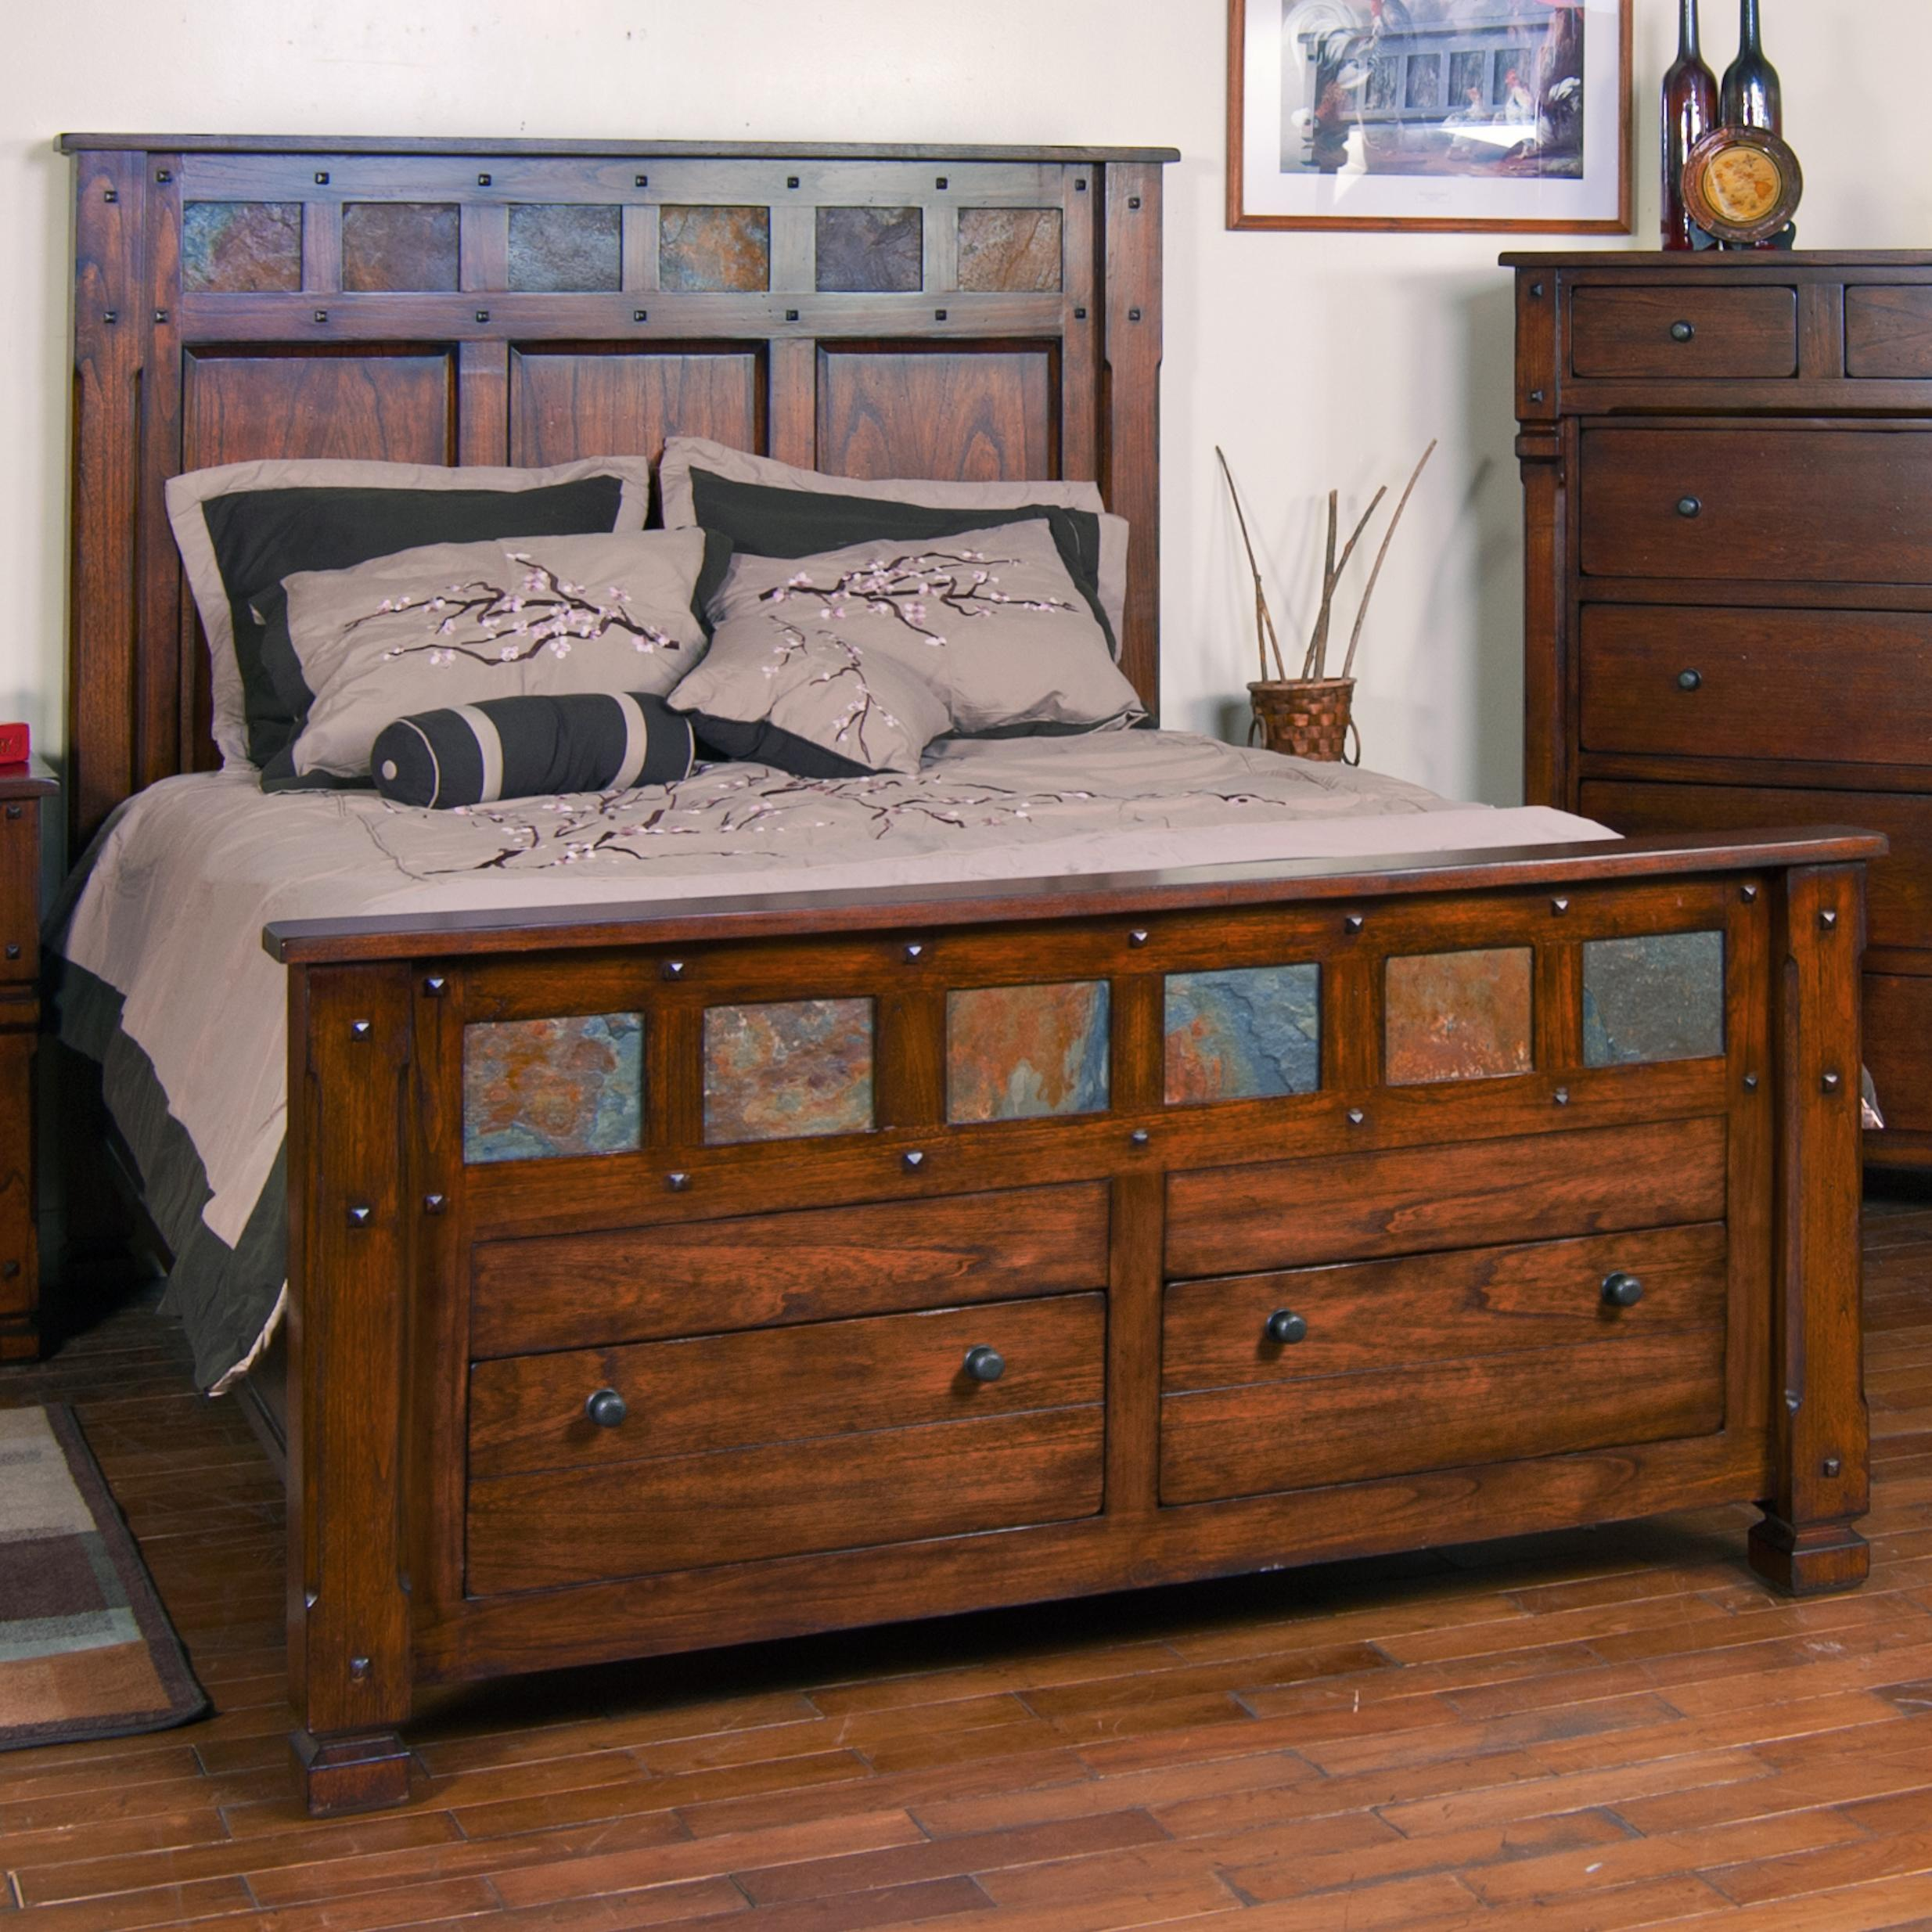 Santa fe king storage bed with slate by sunny designs for Bedroom furniture sets with storage beds